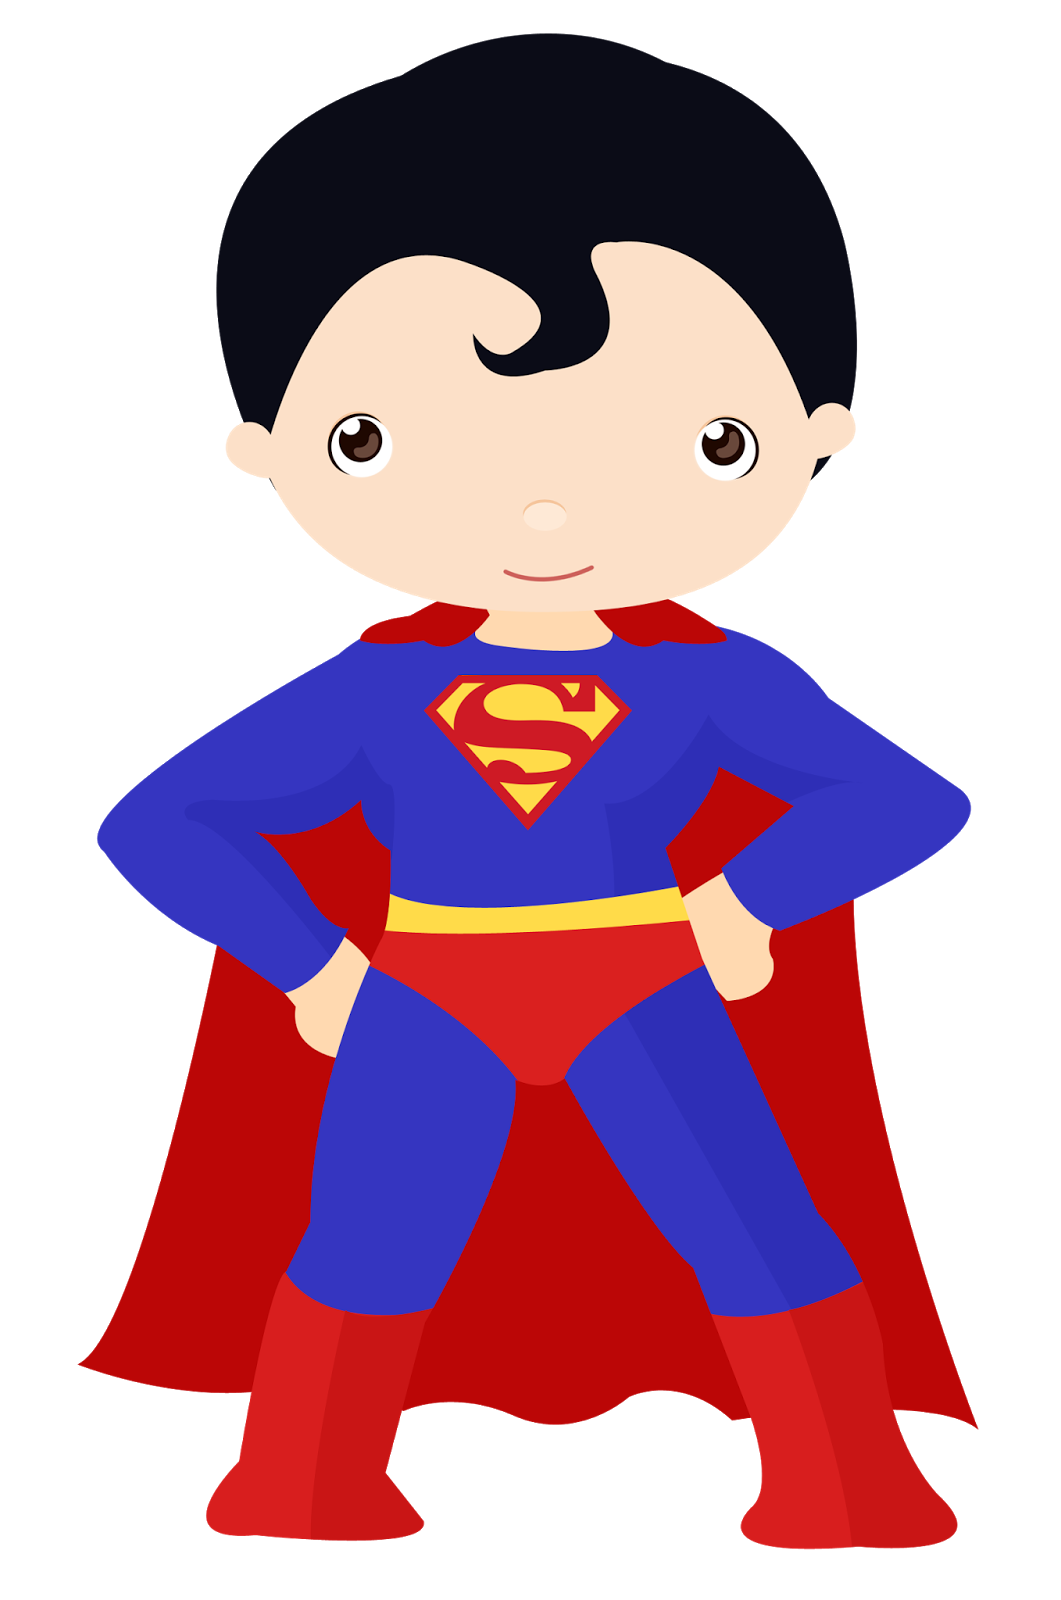 png freeuse stock Superheroes png niver heitor. Superhero kids clipart